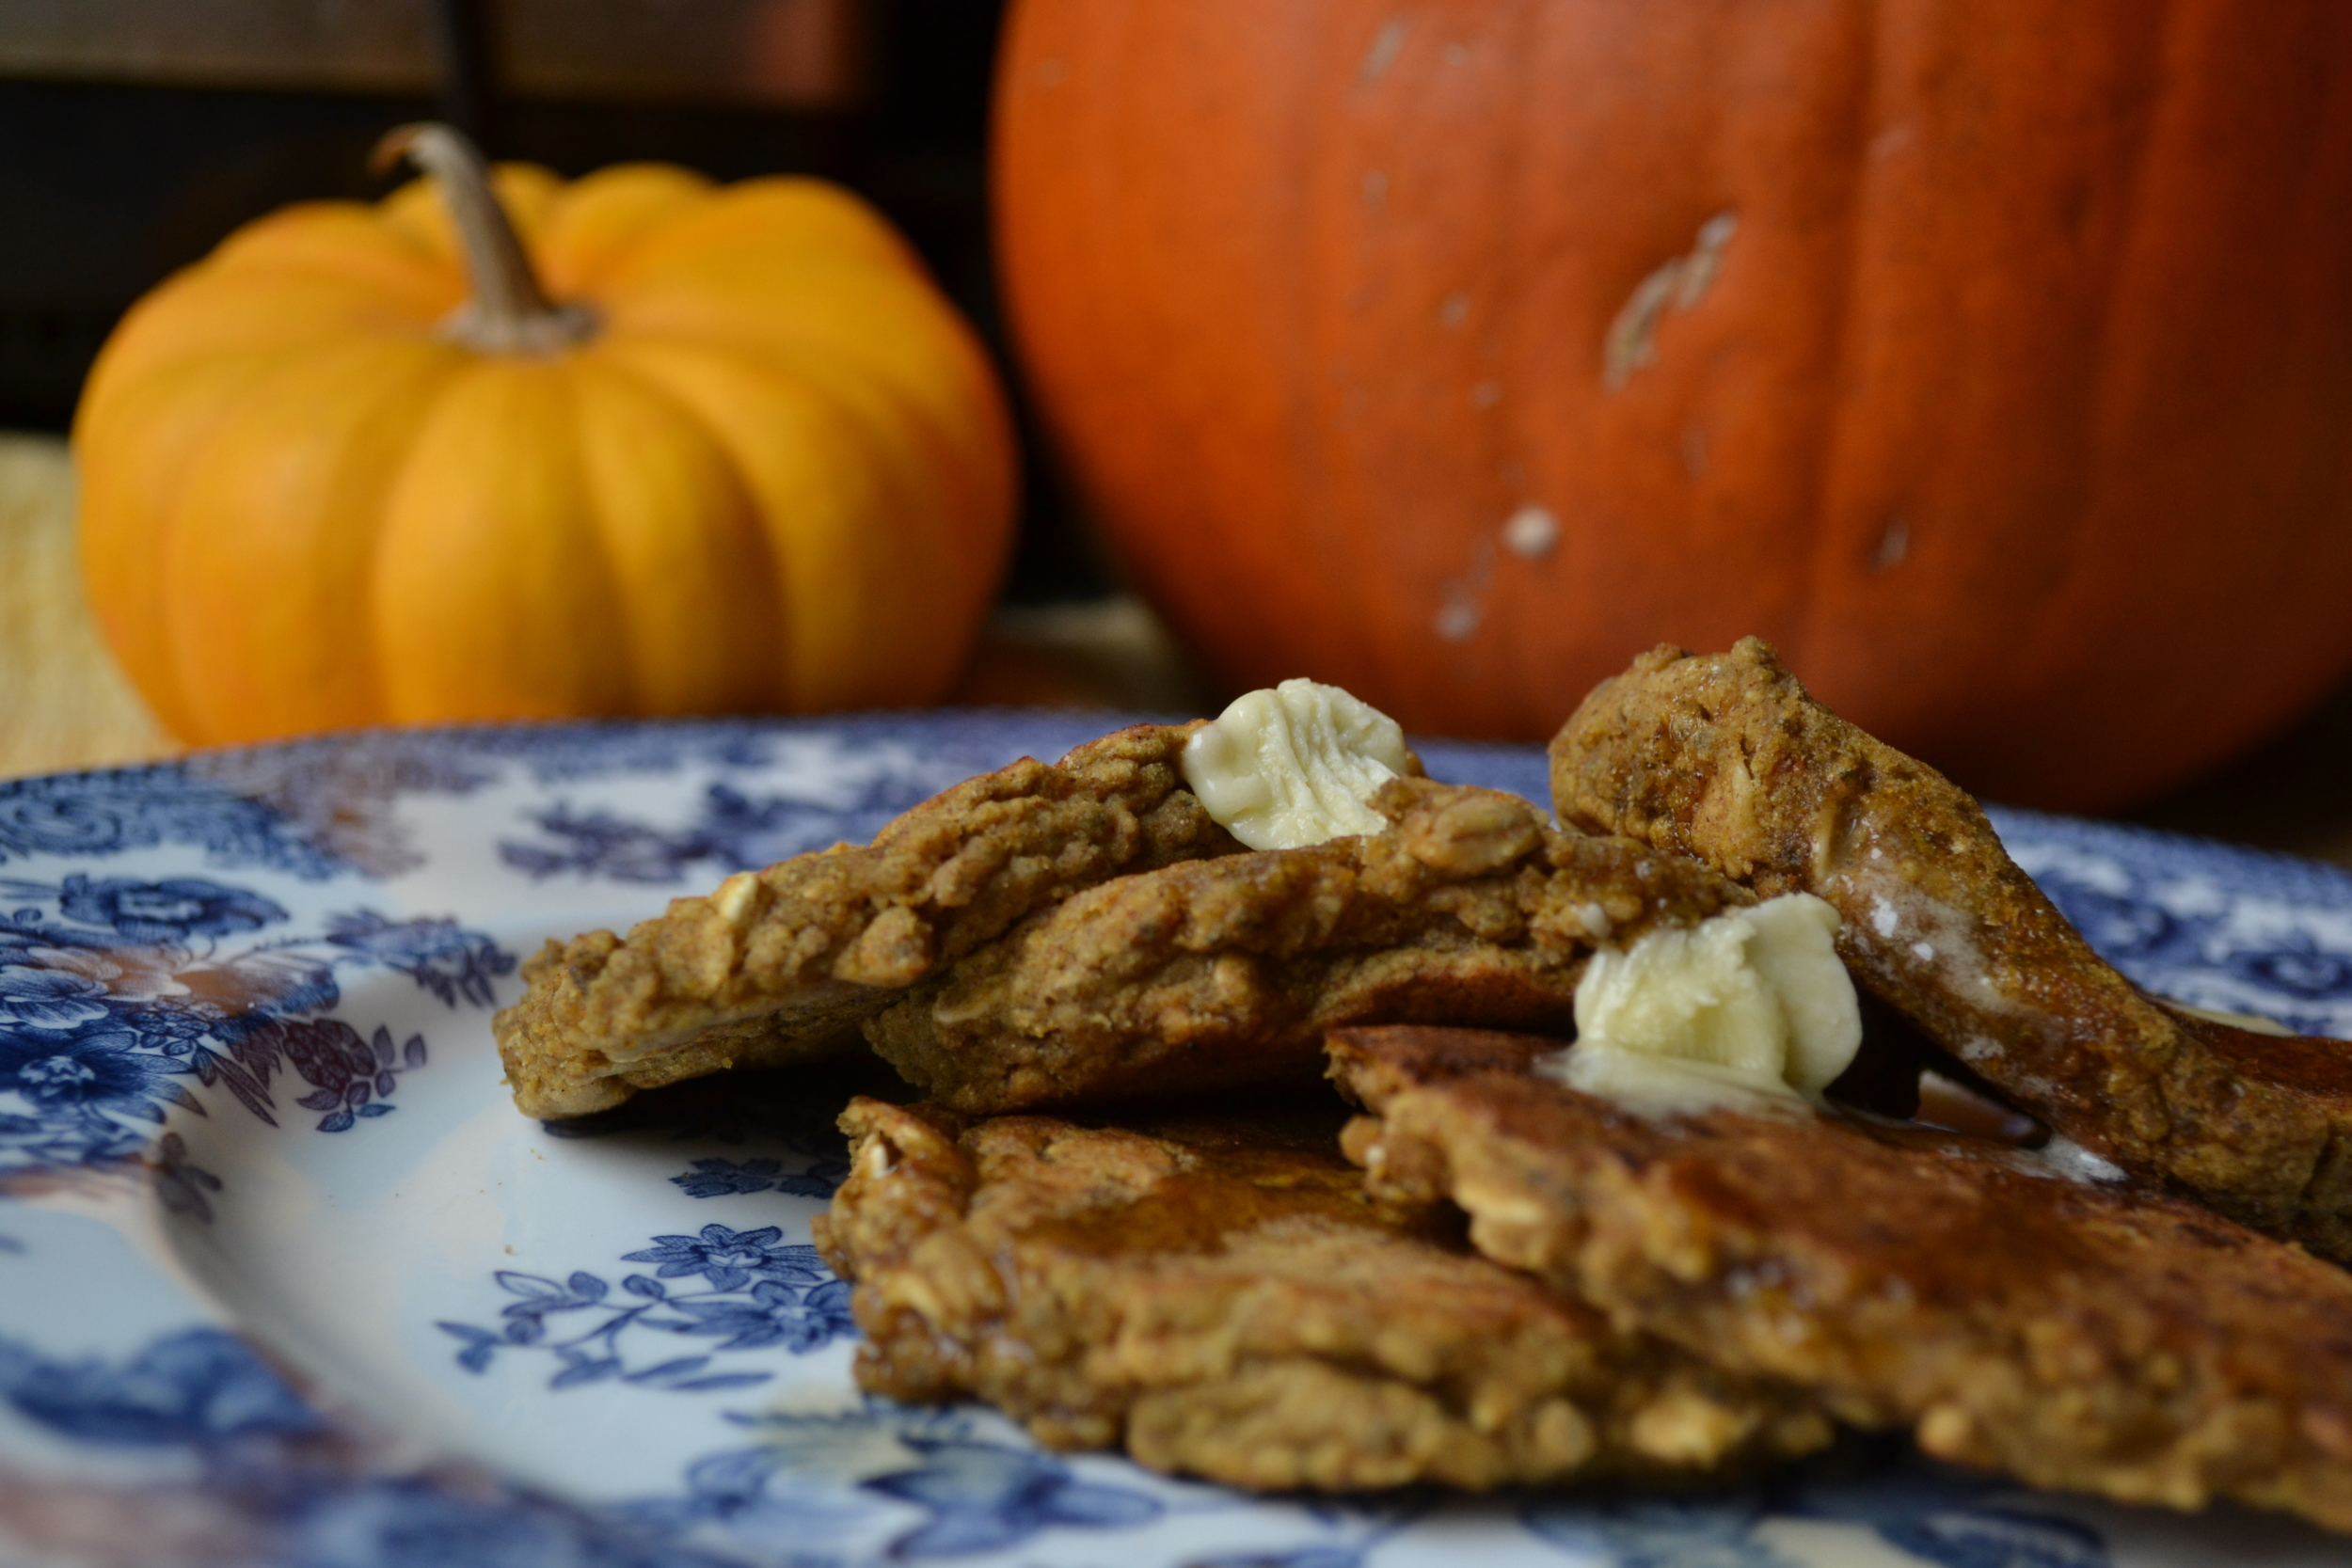 Pumpkin bread pancakes topped with maple syrup and bit of Earth Balance. Photo credit: RMW Nutrition